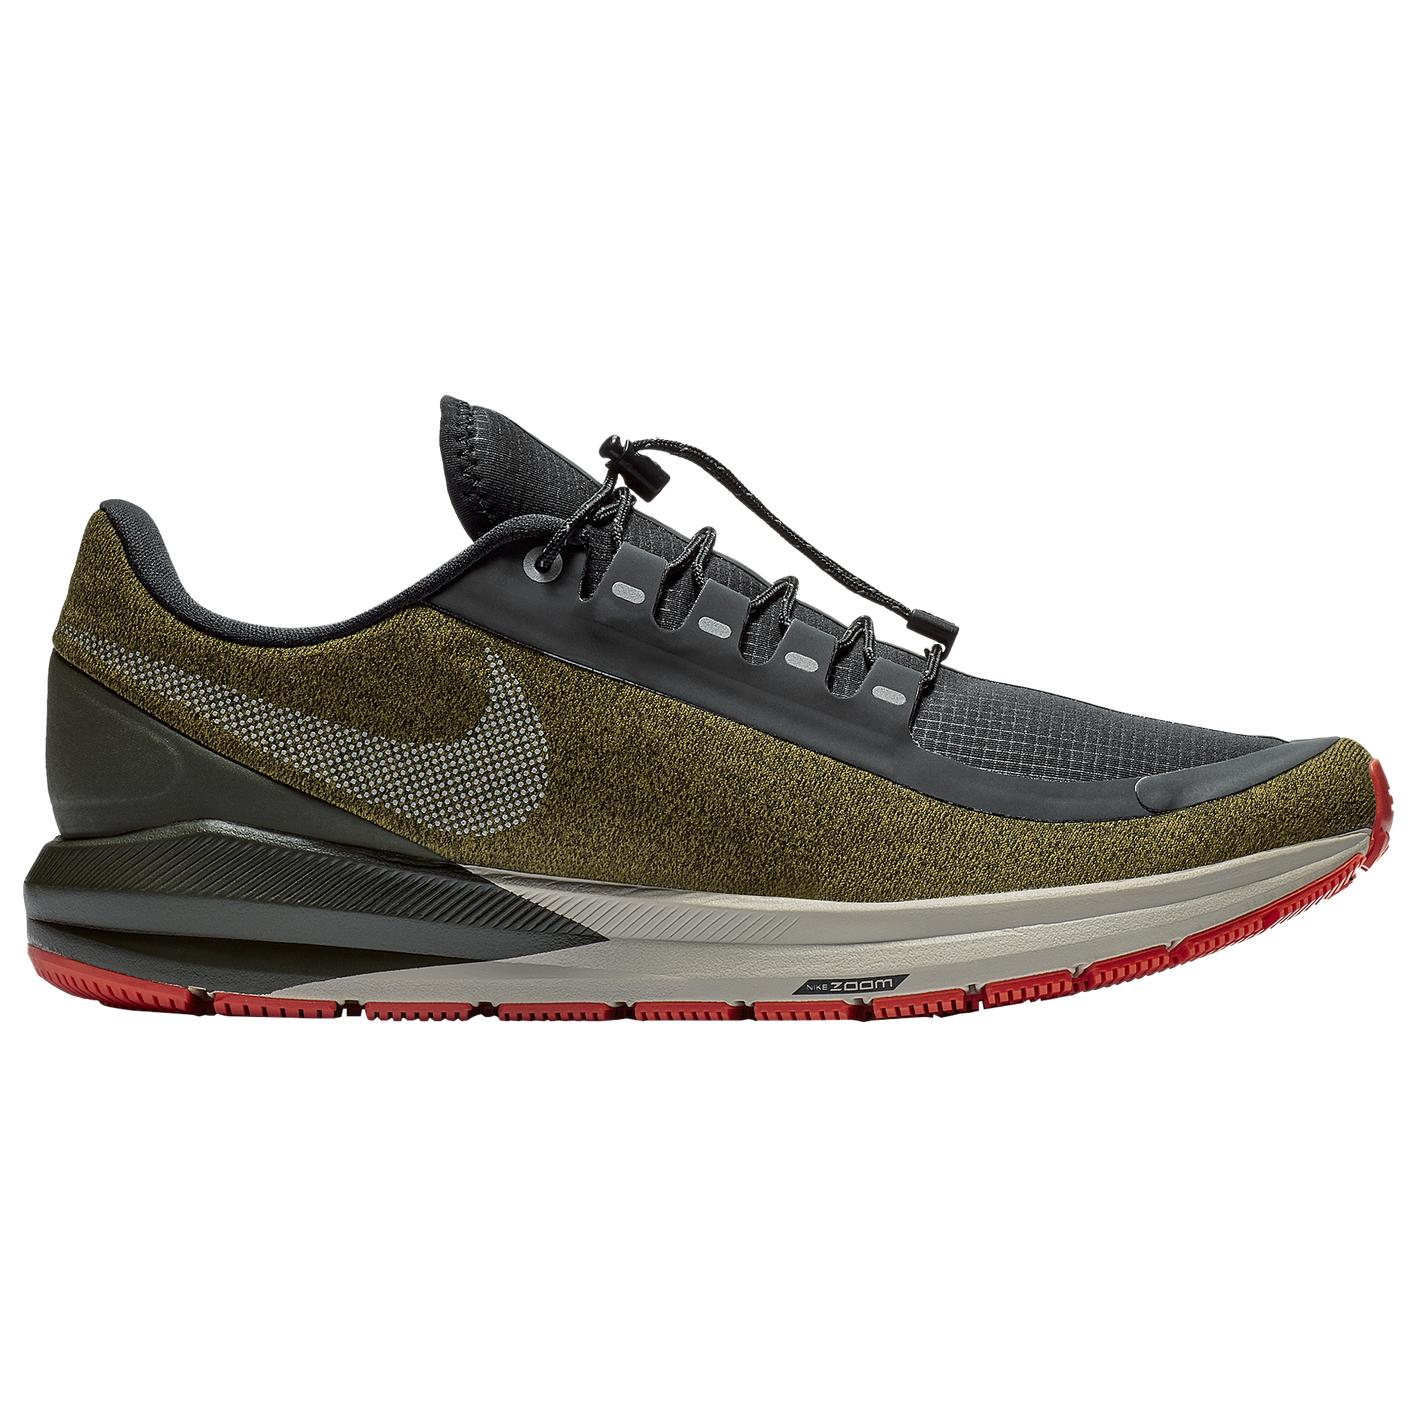 8397c712c0c7 Nike Air Zoom Structure 22 Shield - Men s.  119.99. Product    A1645300.  Selected Style  Olive Flak Metallic Silver Black String ...